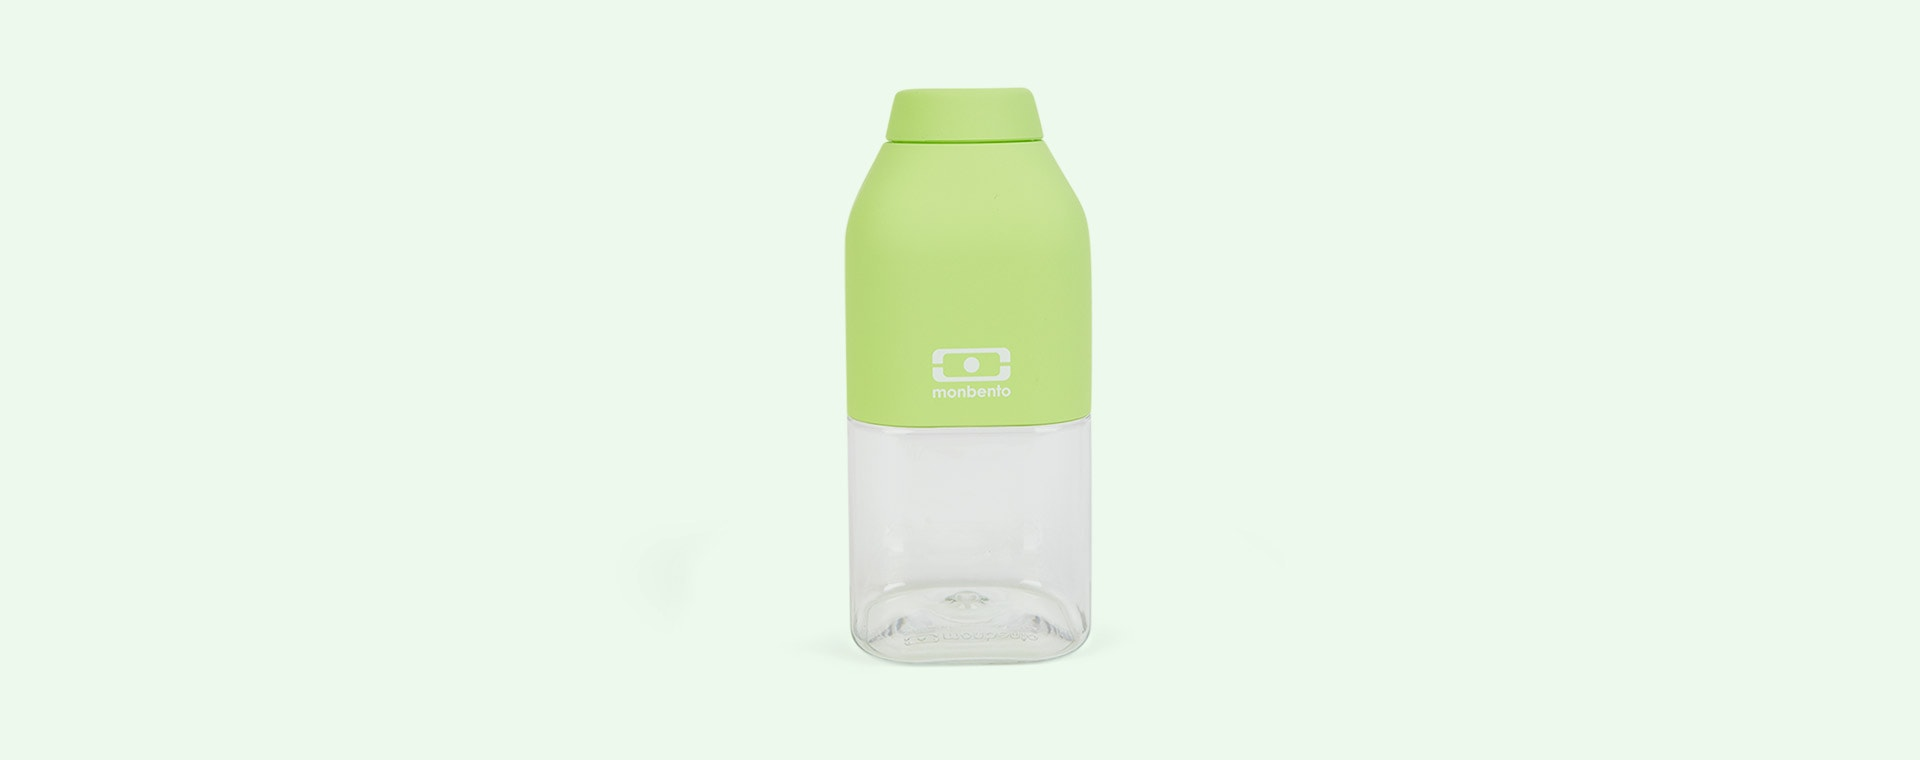 Green Apple monbento Positive 330ml Bottle